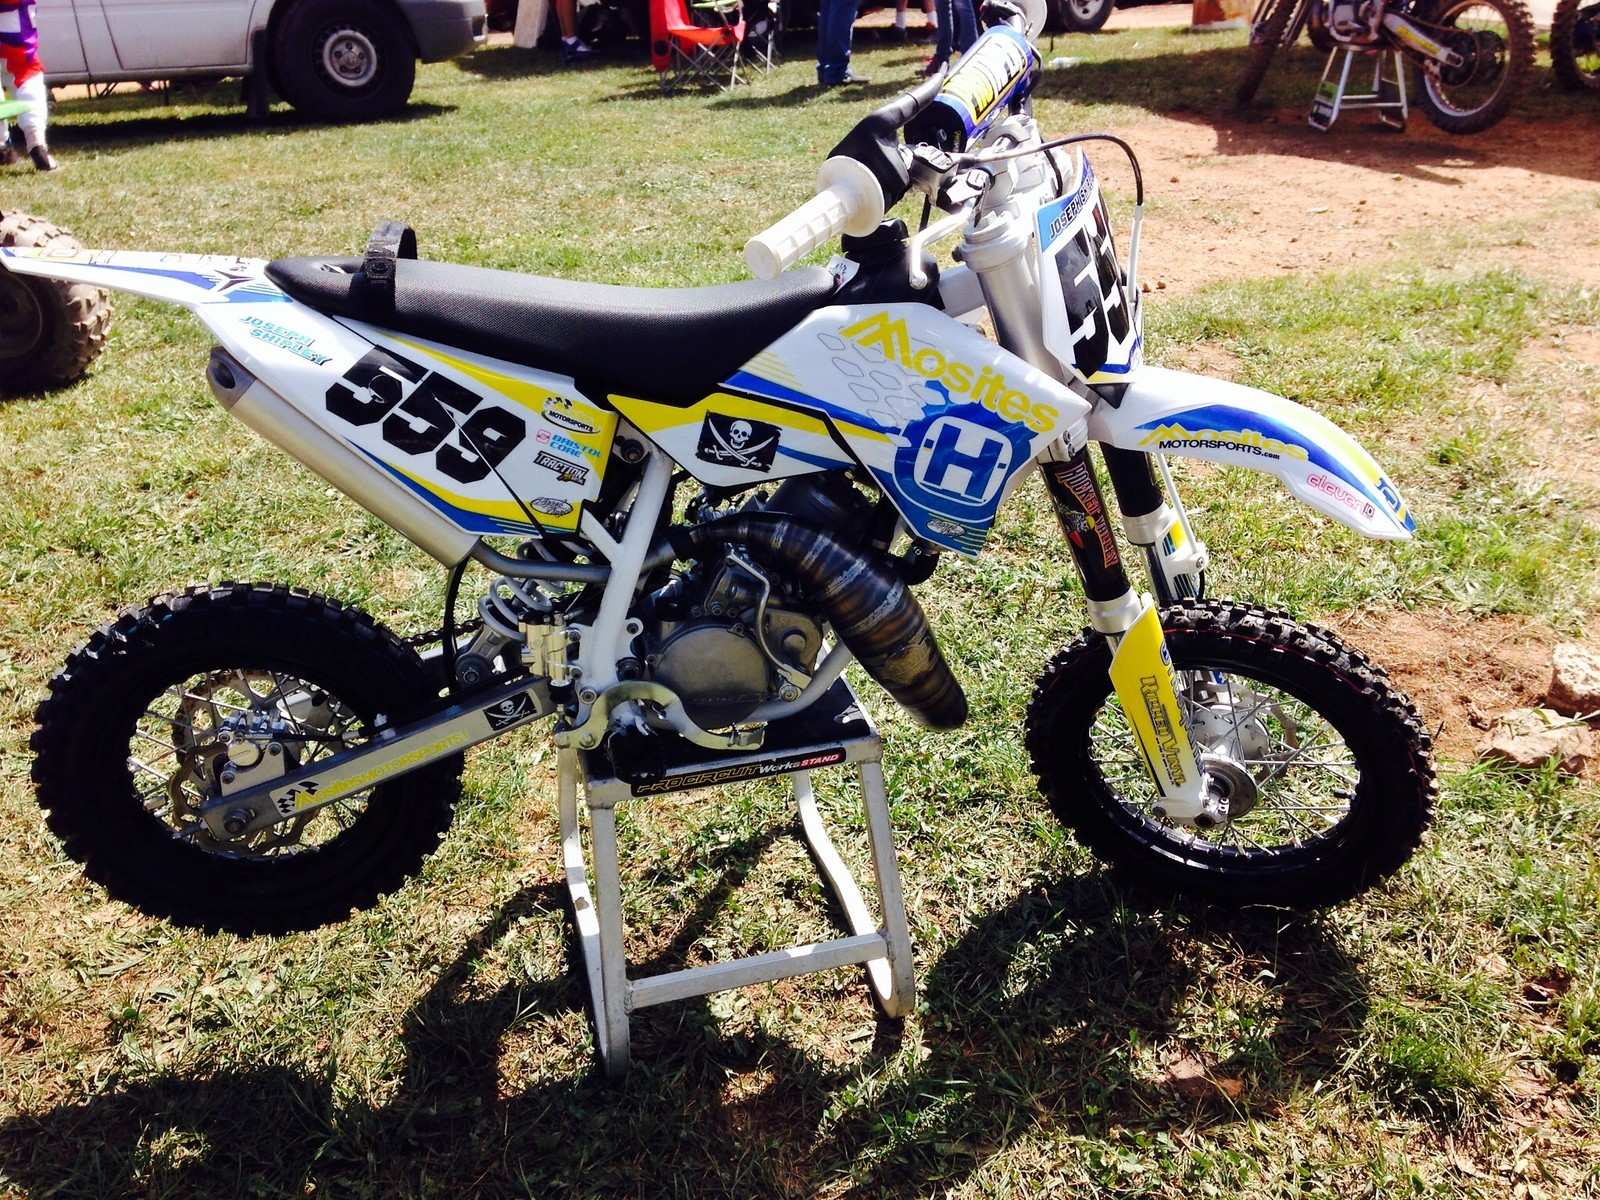 Husqvarna TC 50 - sship103's Bike Check